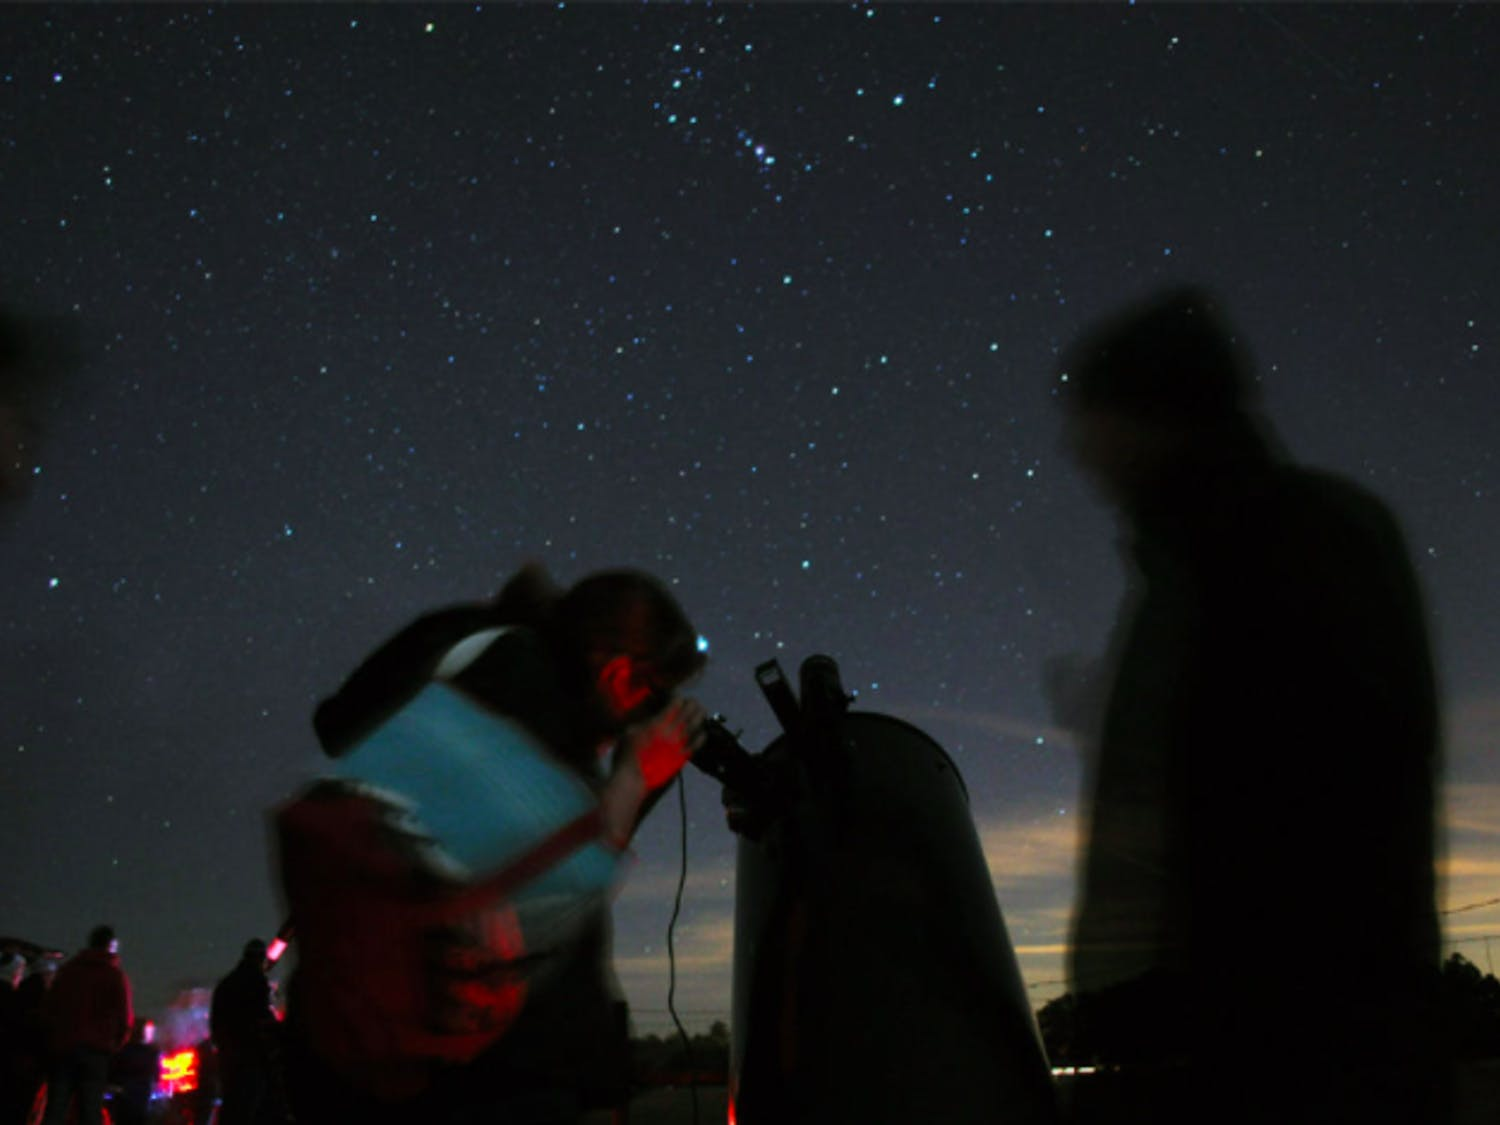 Attendees at Paynes Prarie stargazing event check out the night sky a few years ago in January 2015.